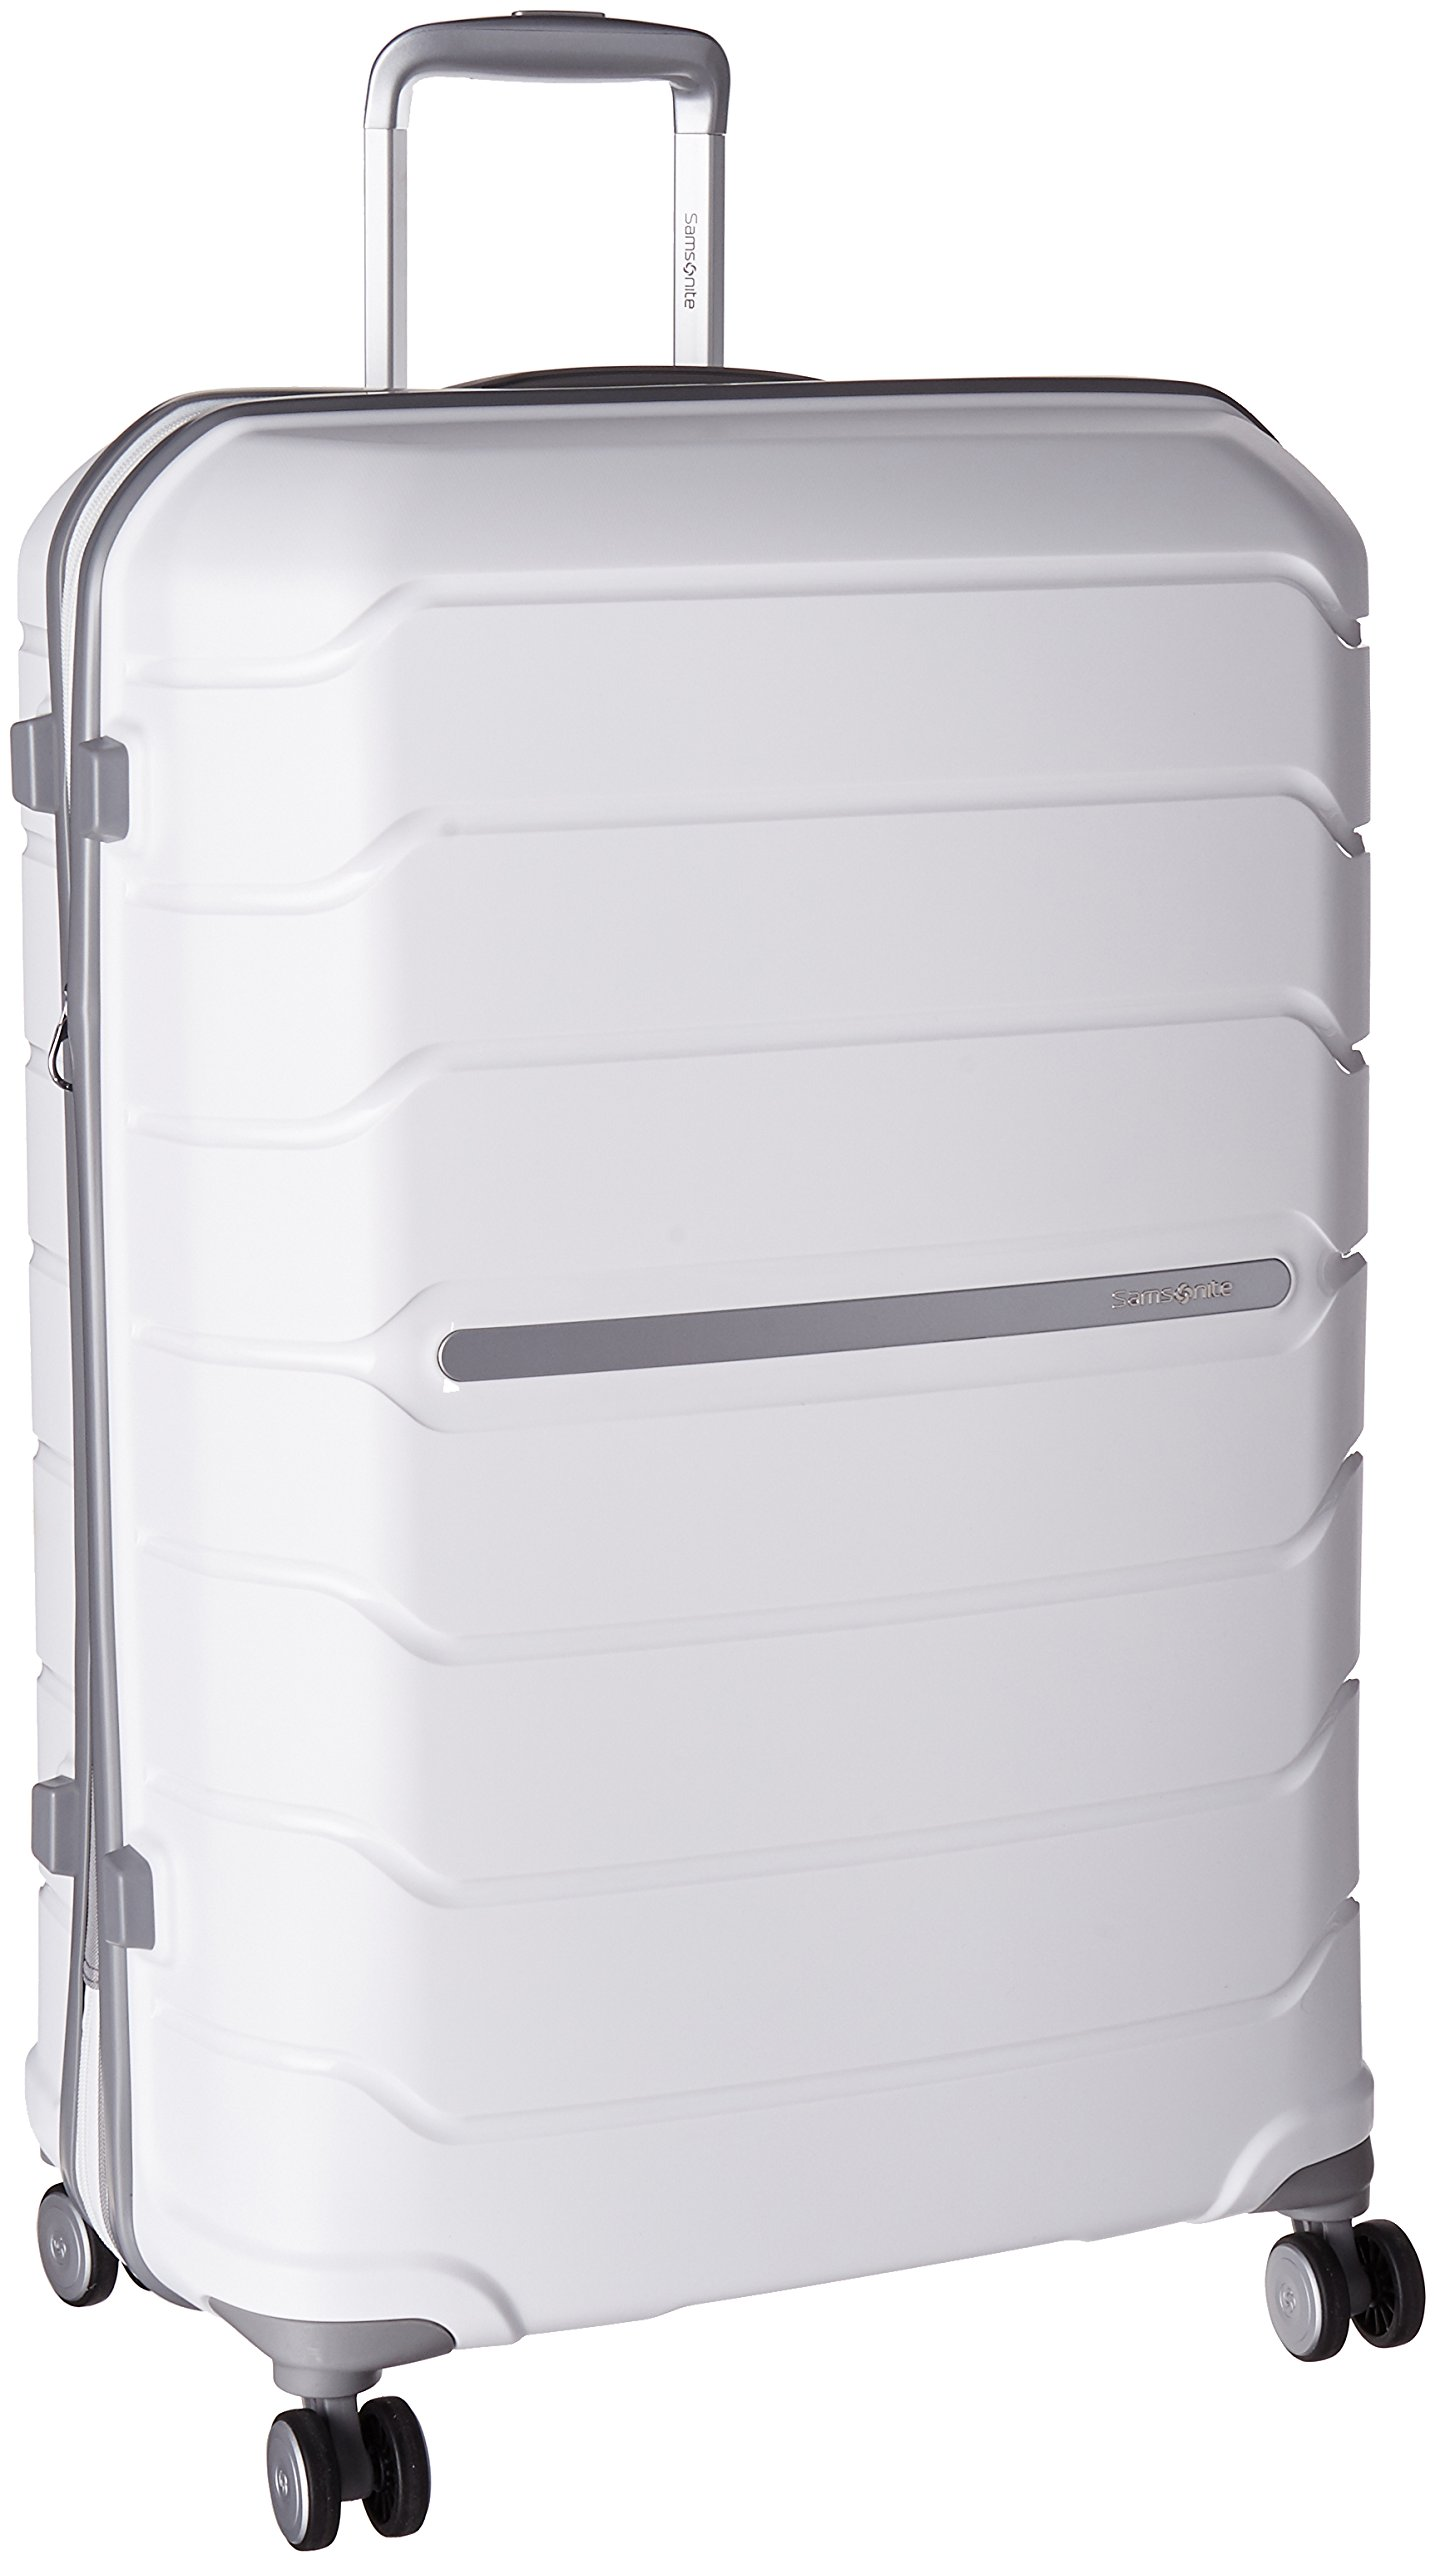 Samsonite Freeform Hardside Spinner 28, White